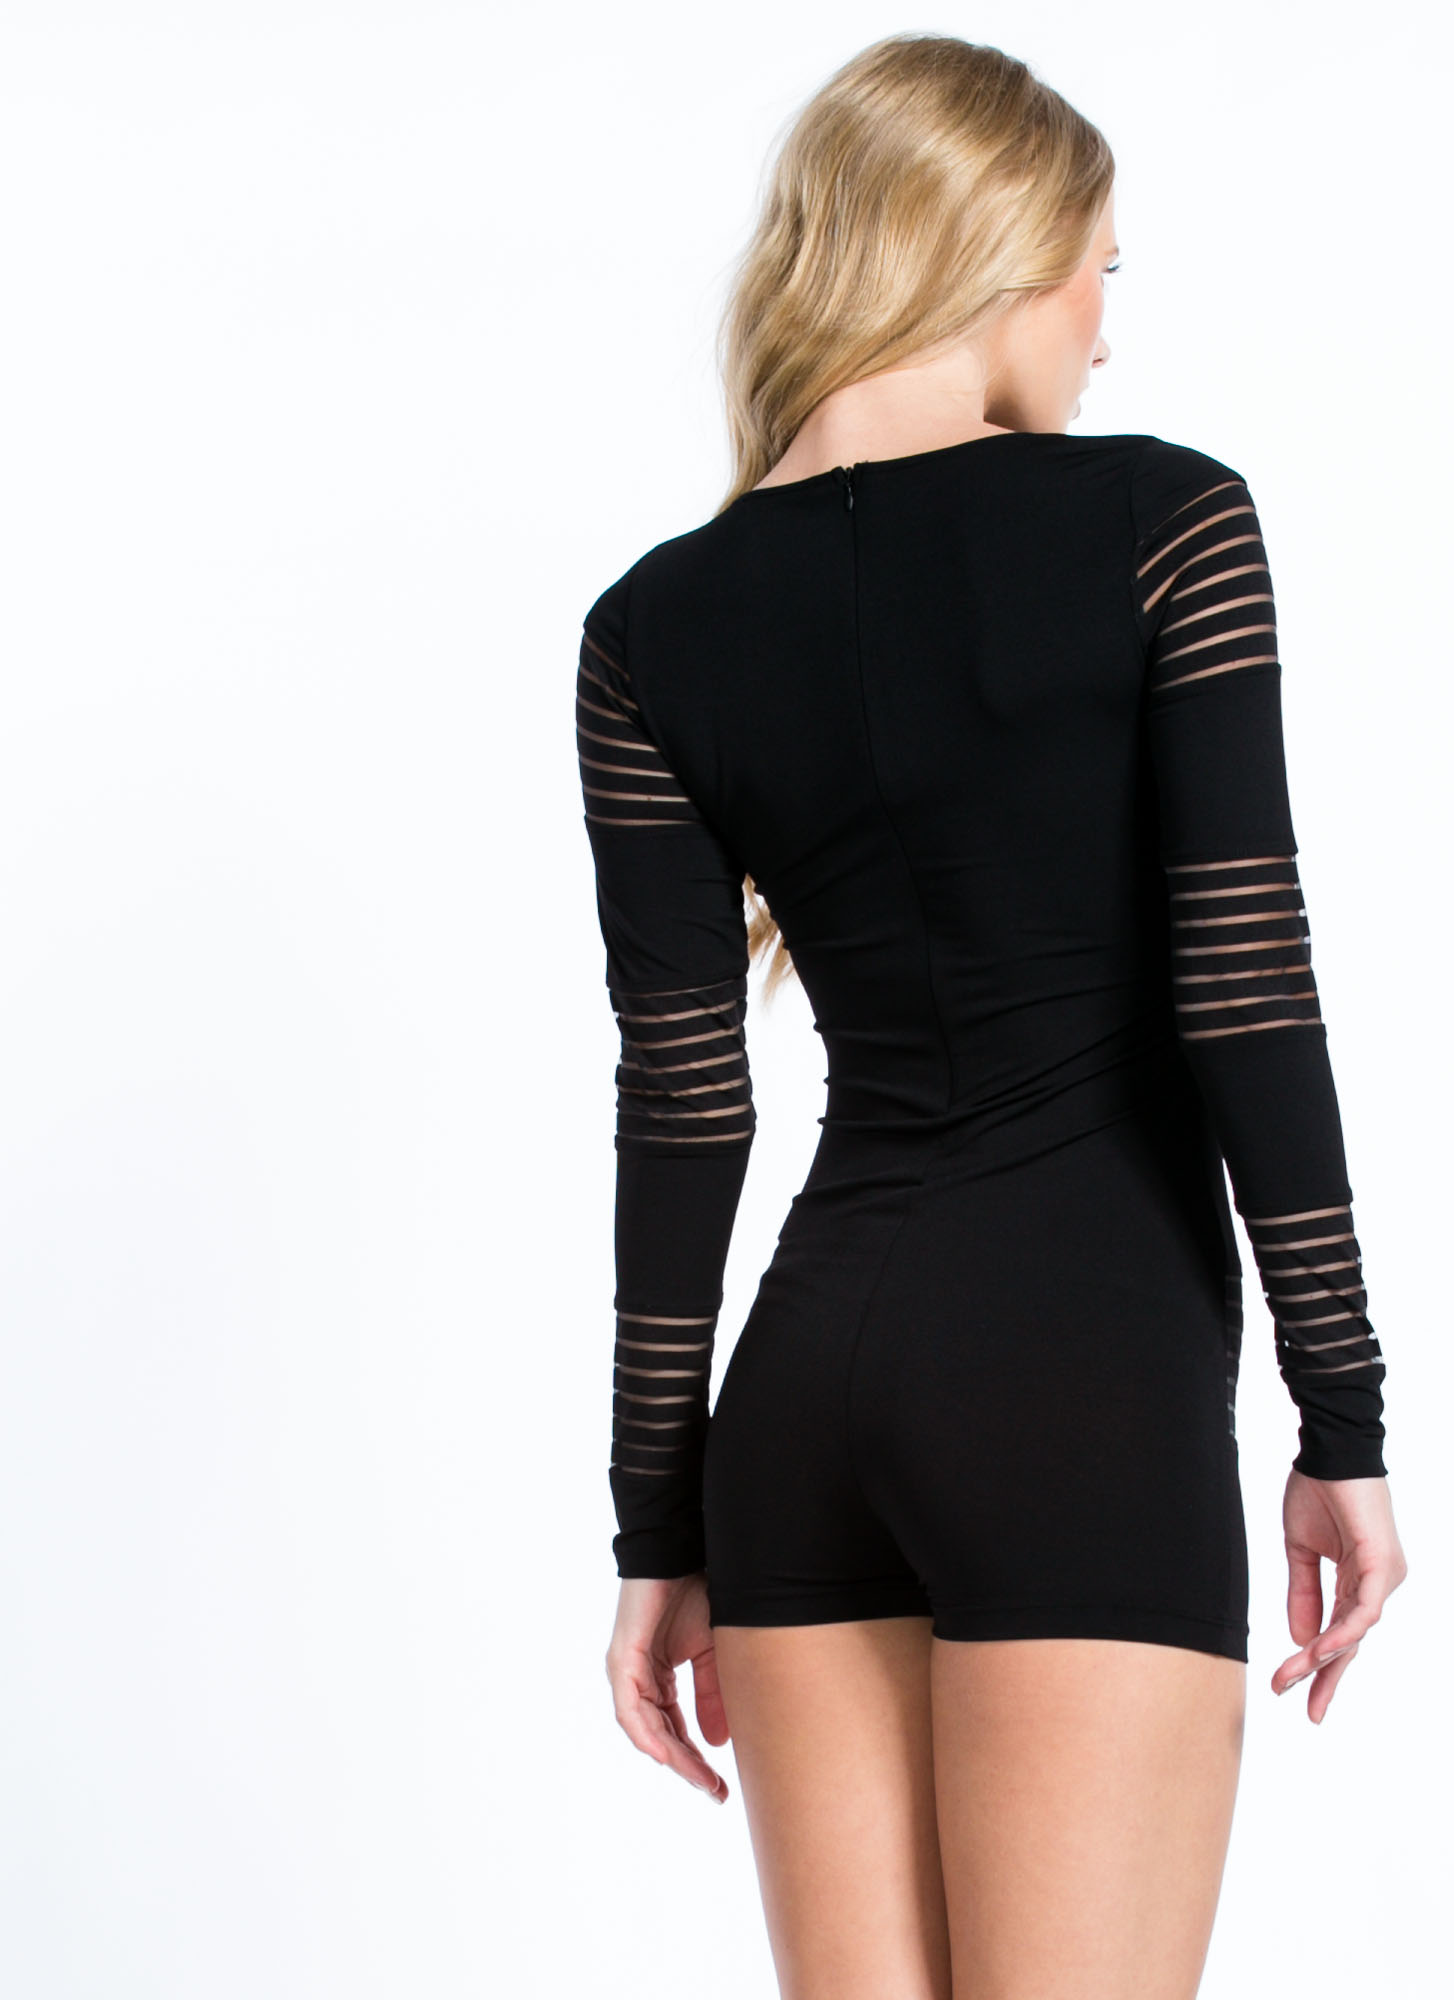 In My Shadow Mesh Sheer Stripe Romper BLACK